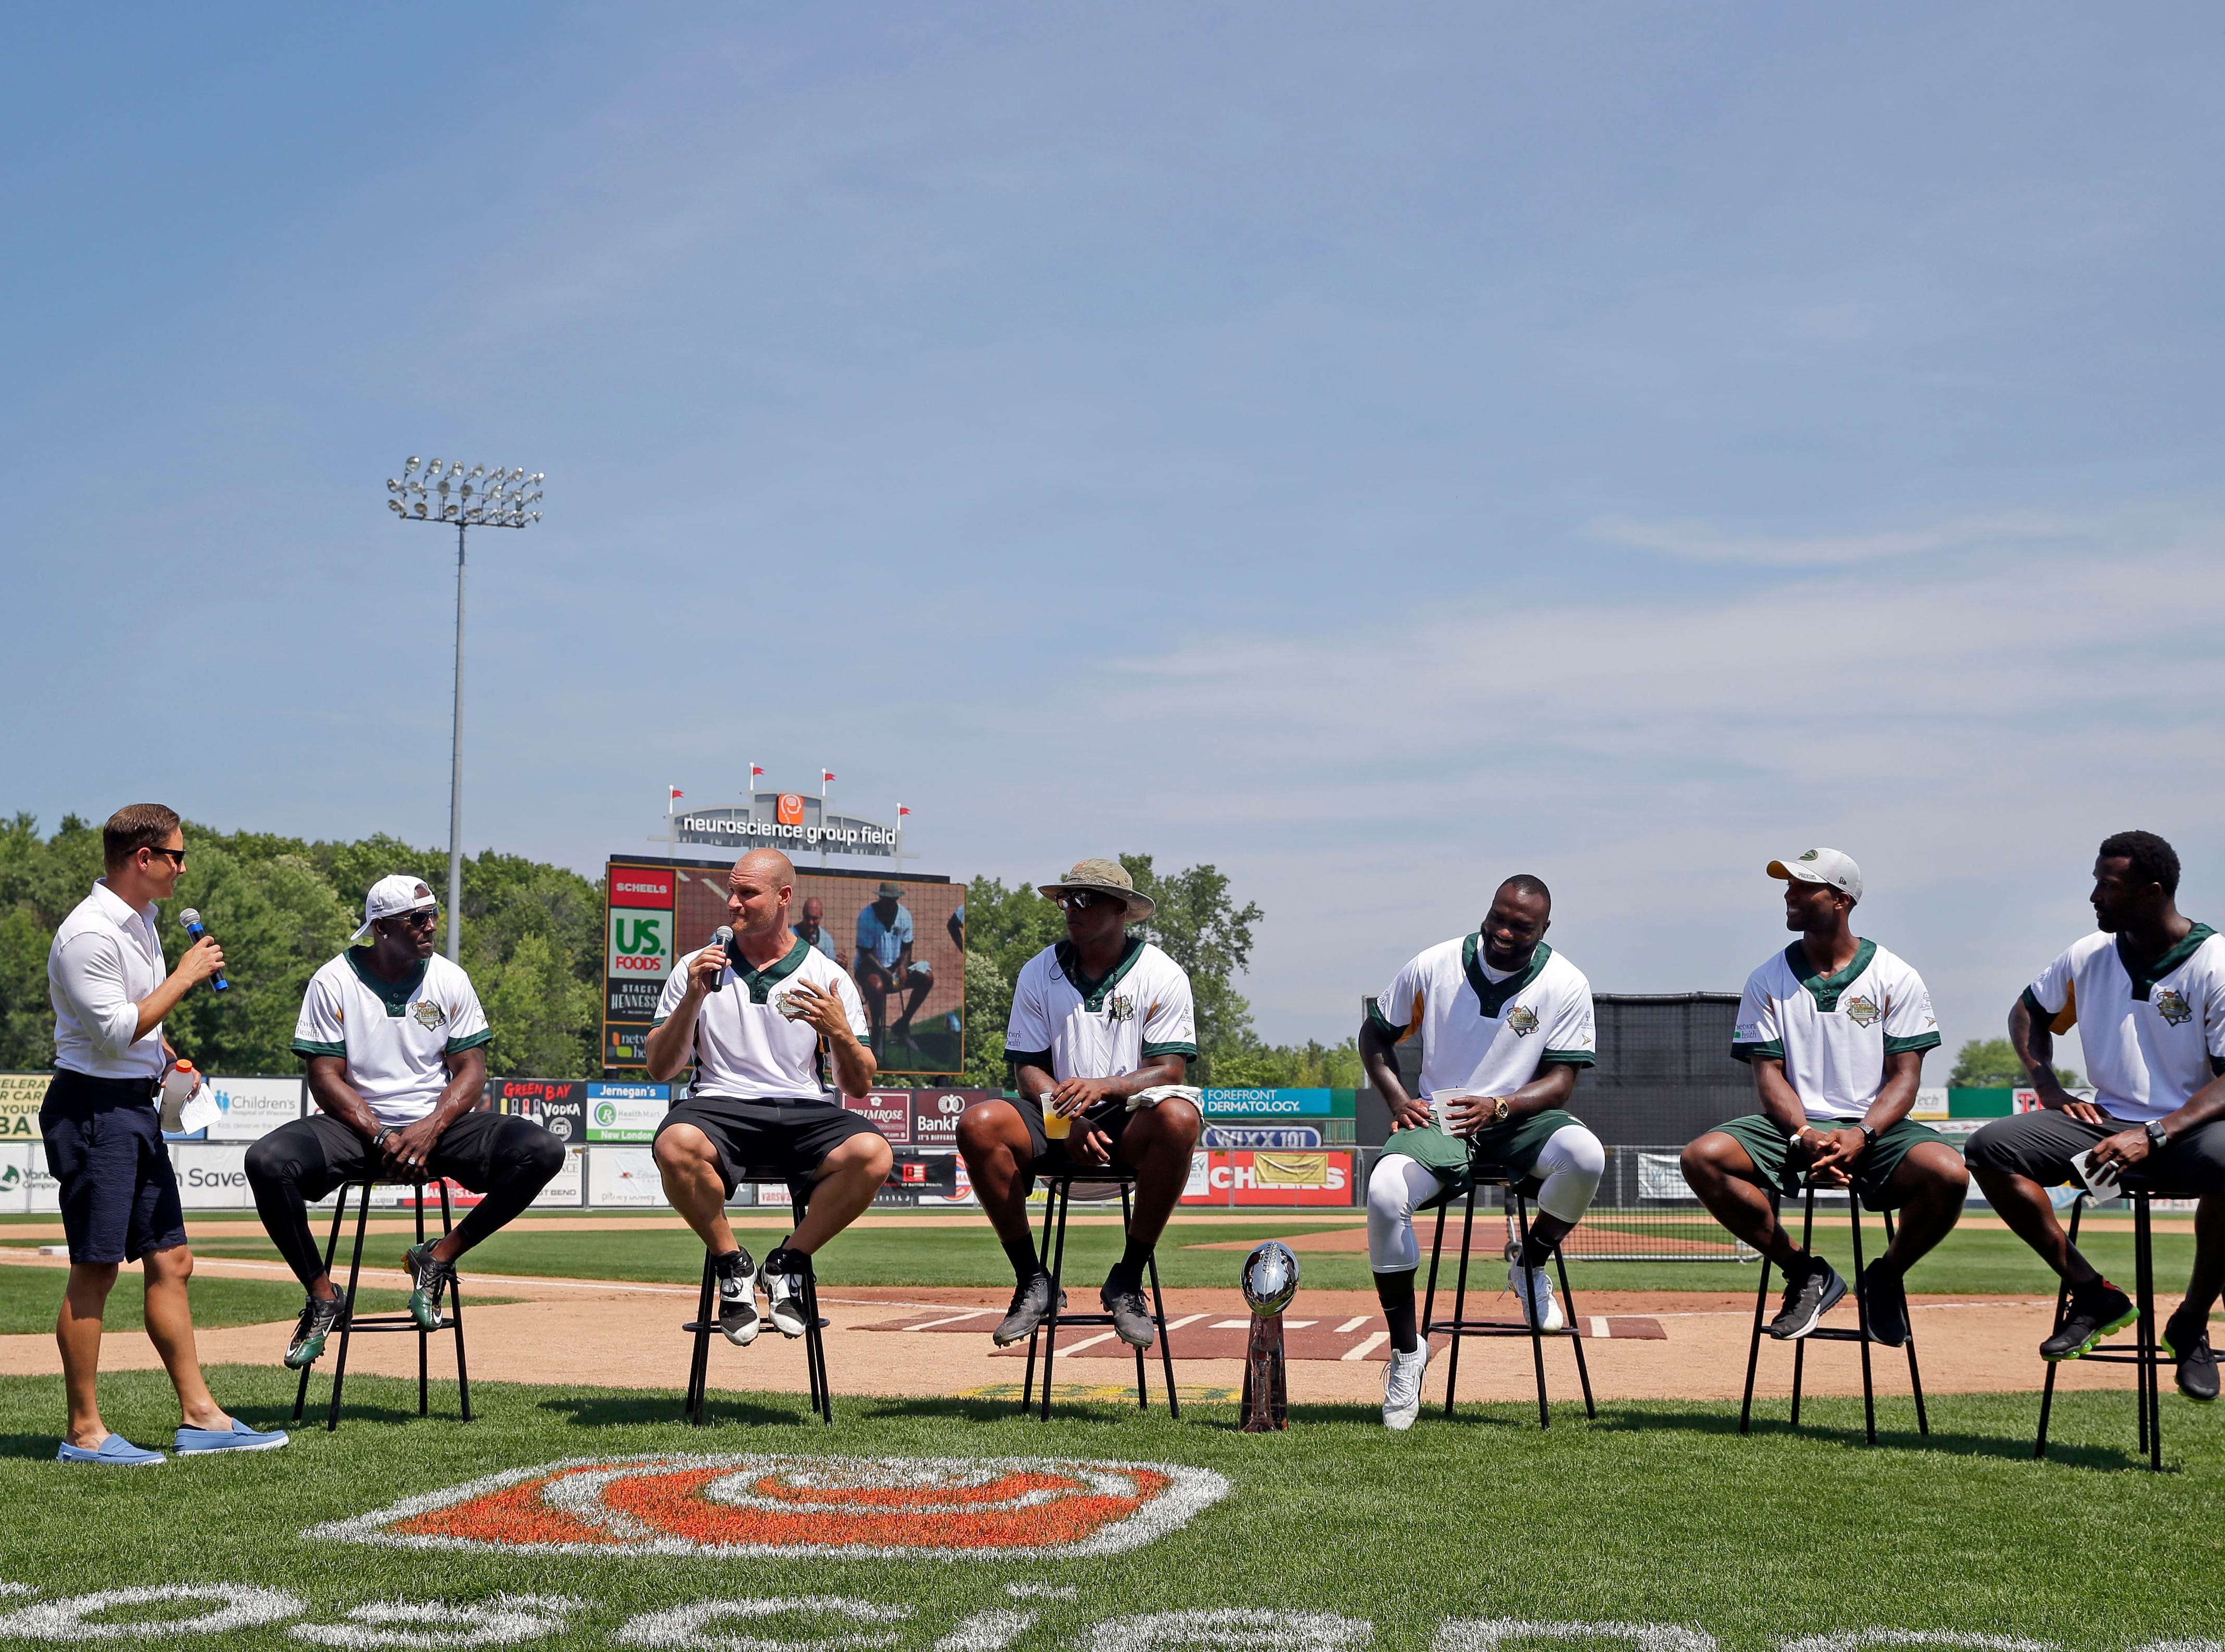 Members of the Packers that played in Super Bowl XLV talk before the Donald Driver charity softball game Sunday, August 5, 2018, at Neuroscience Group Field at Fox Cities Stadium in Grand Chute, Wis.